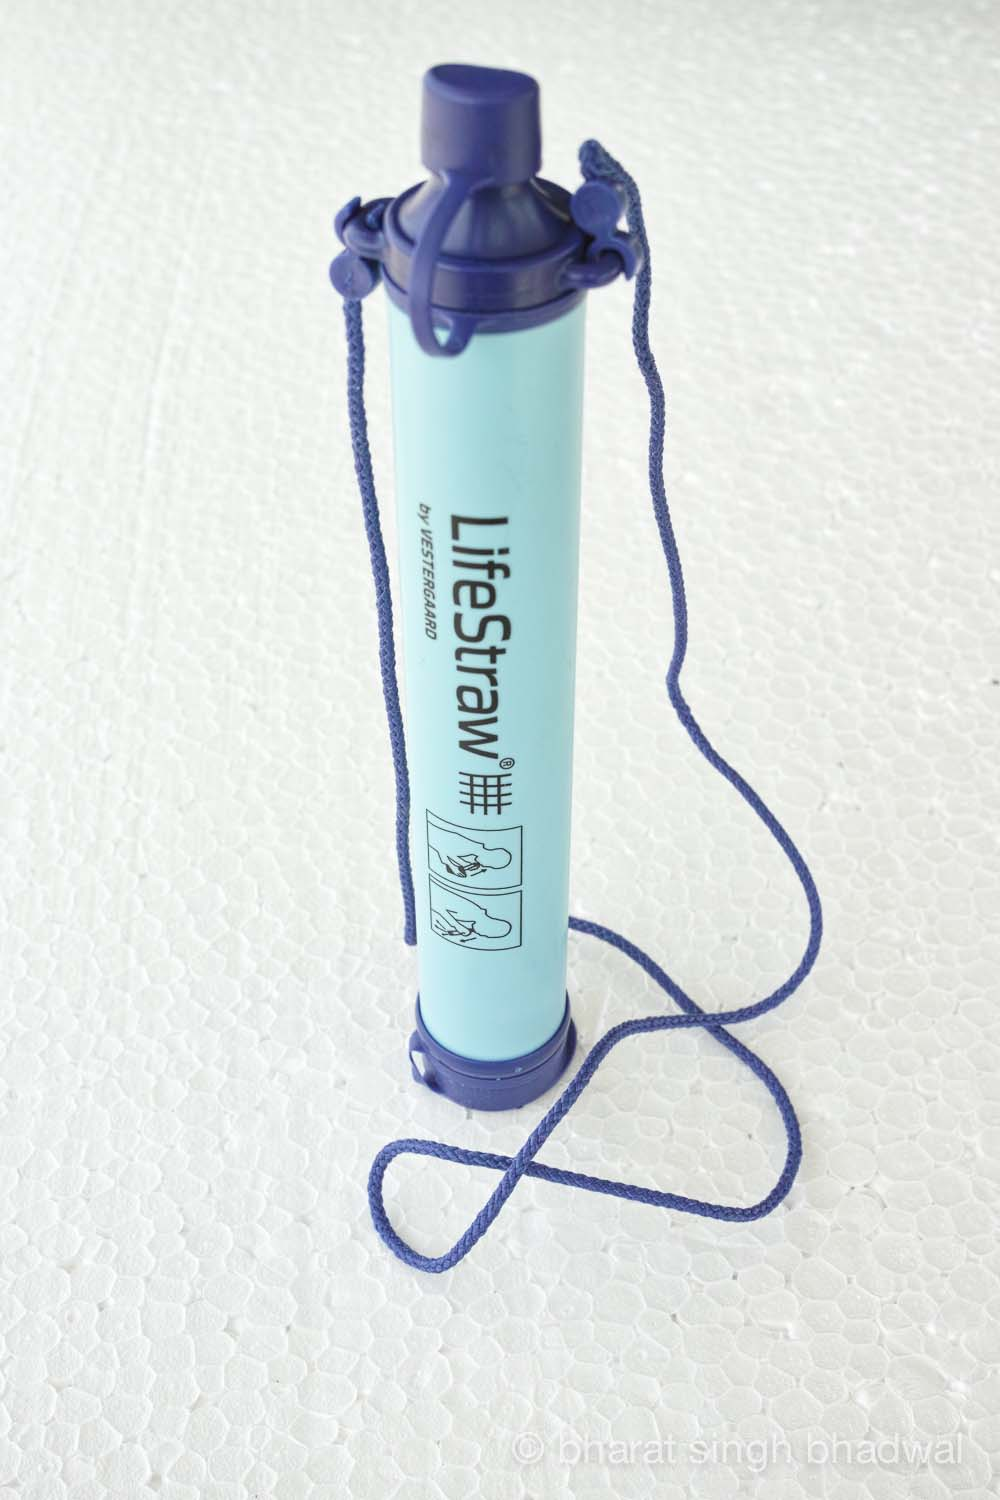 Lifestraw by Vestergaard Frandsen